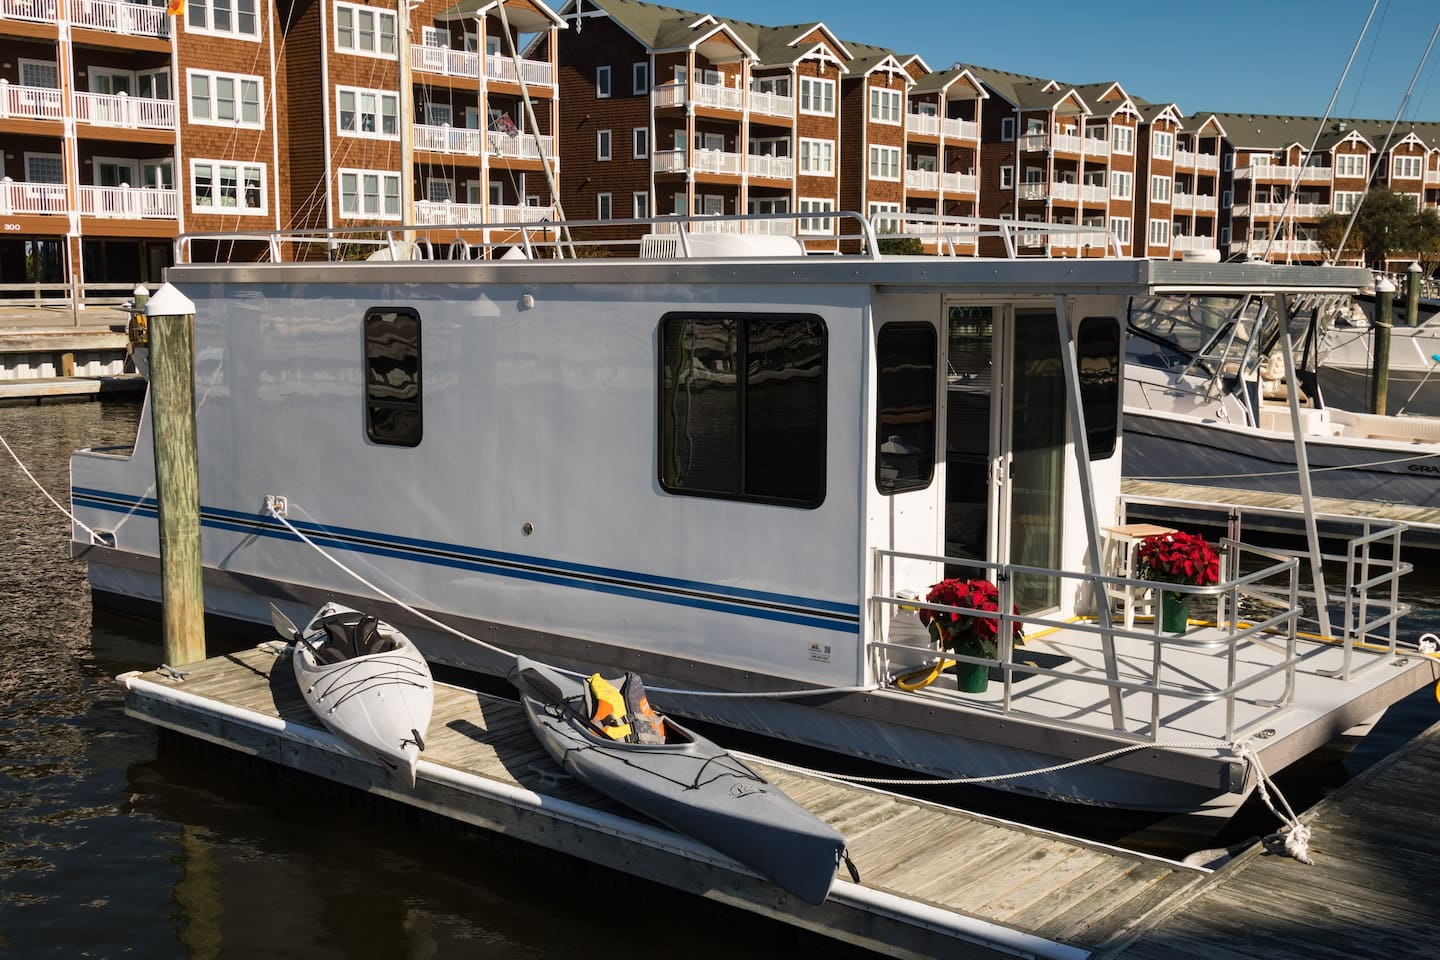 Leave from The Love Boat by water in two kayaks provided with your rental (paddles and life-vests included!)